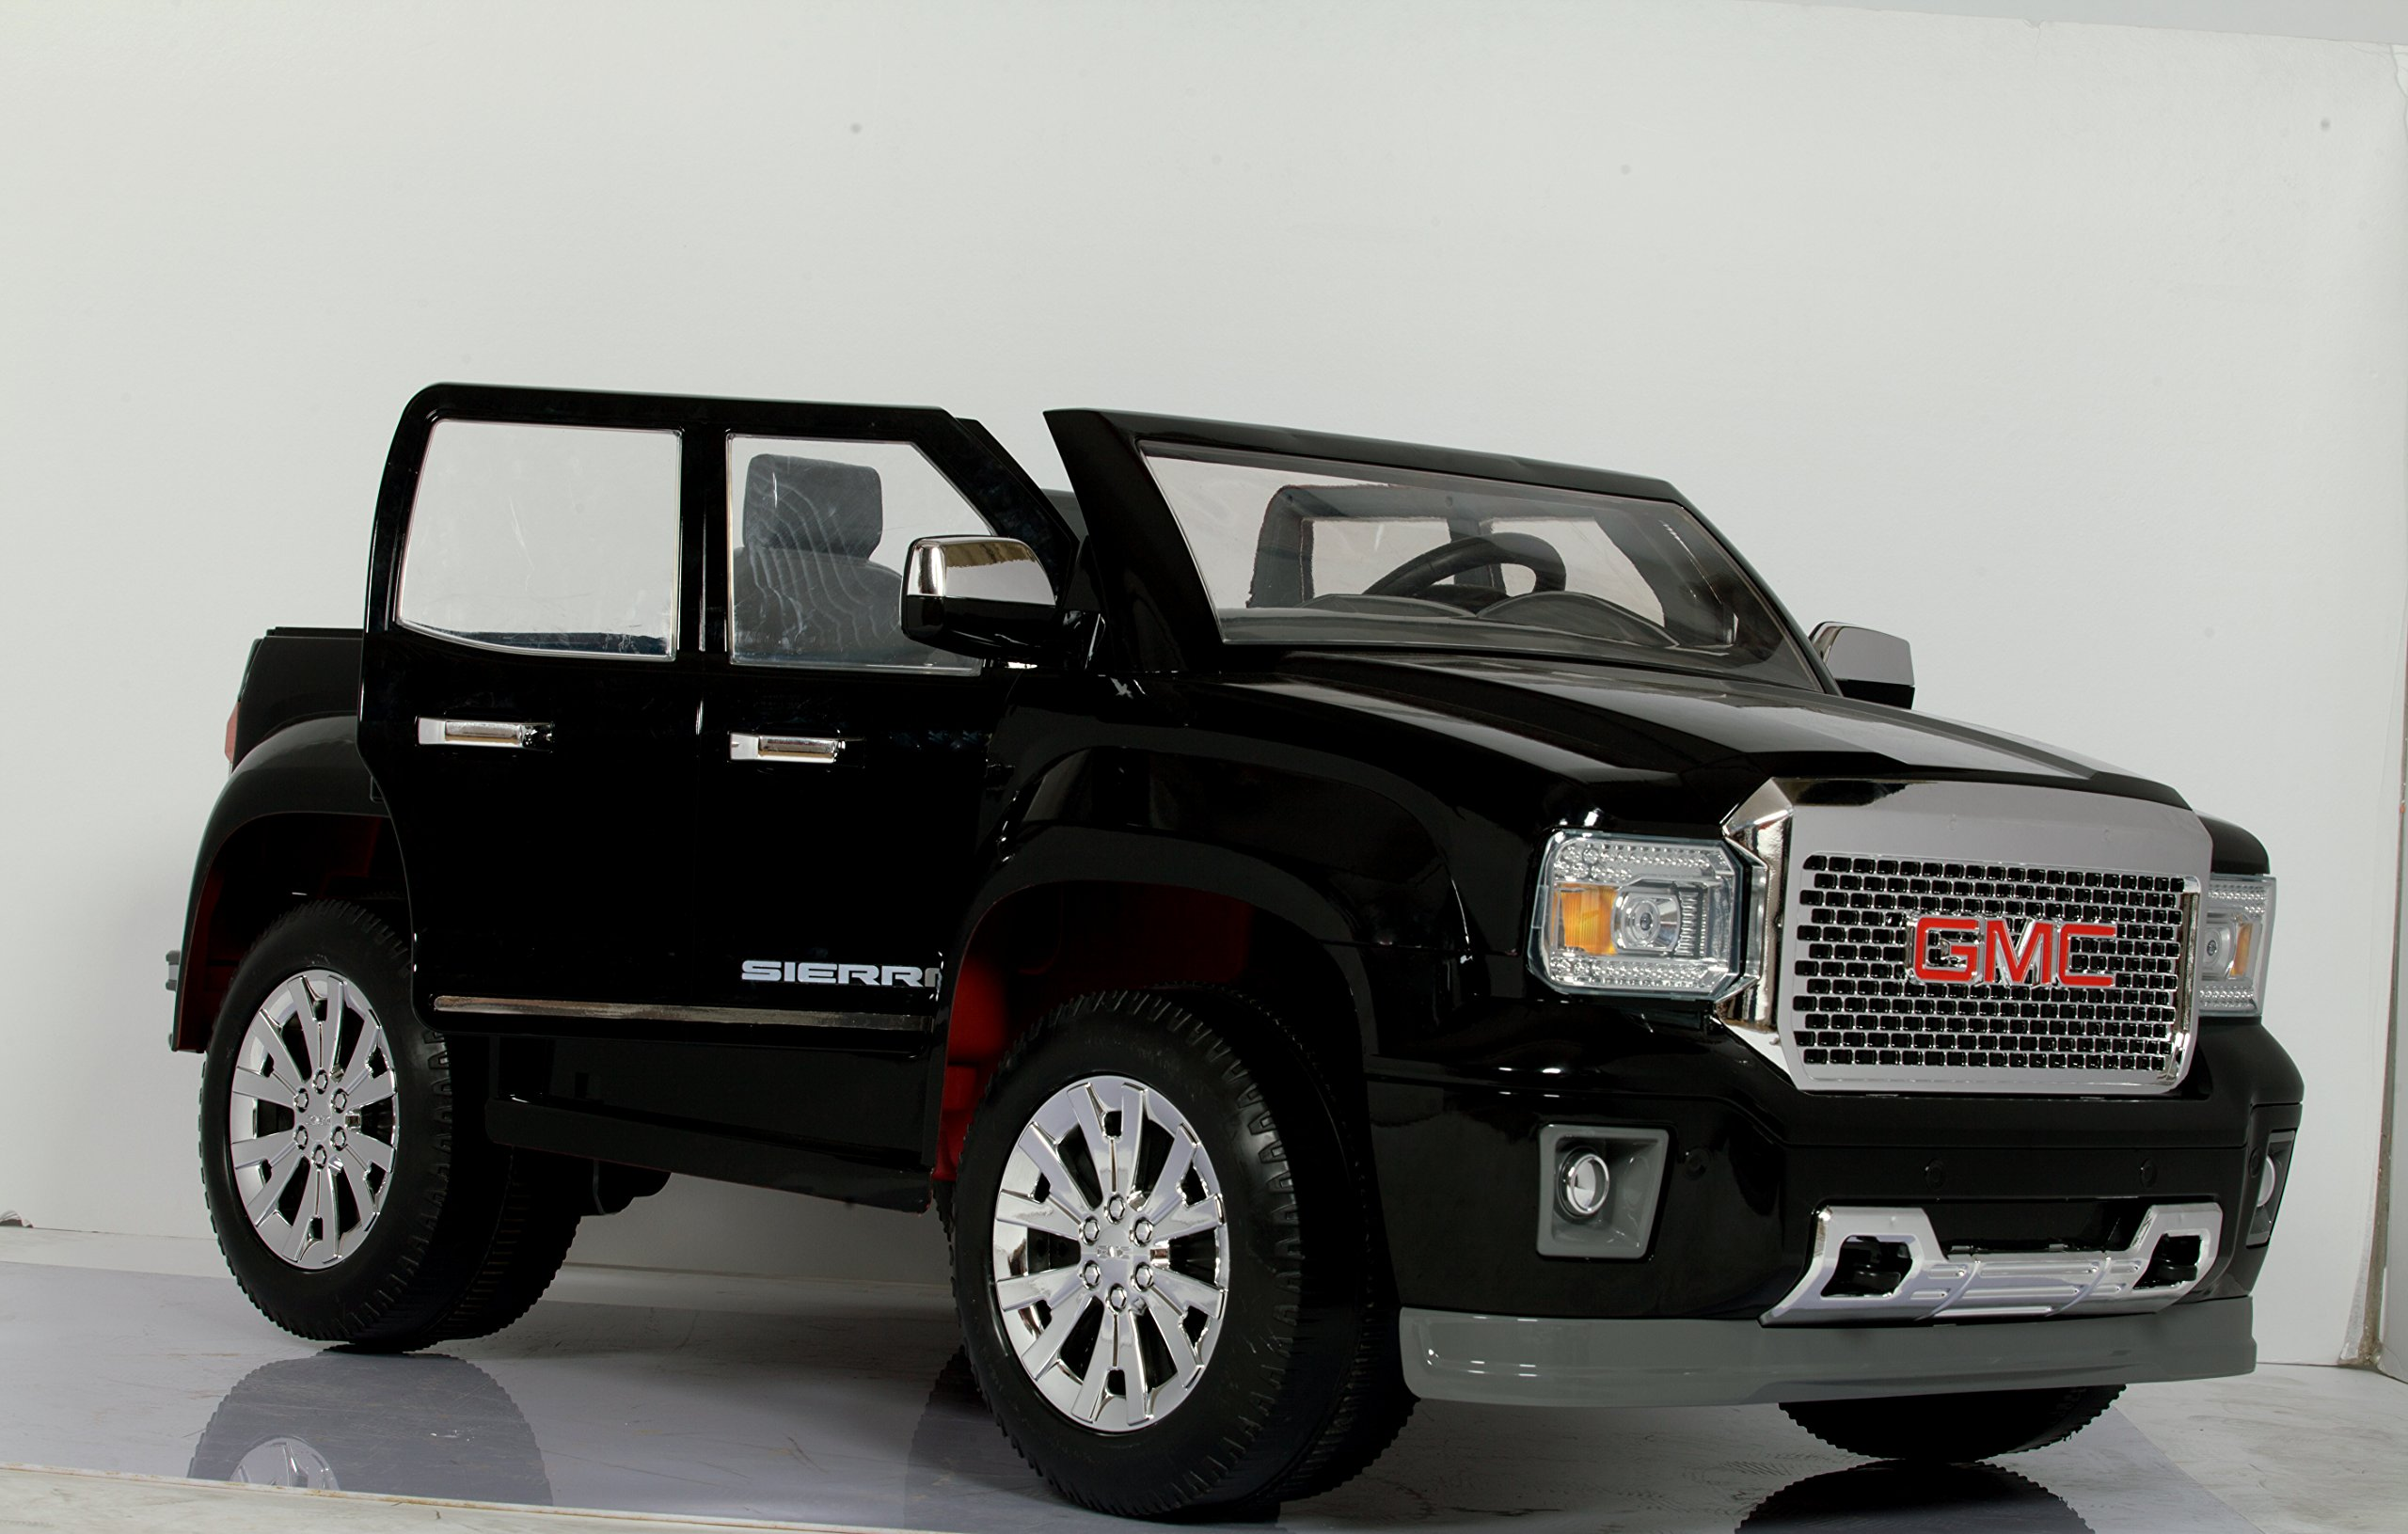 Rollplay GMC Sierra Denali 12-Volt Battery-Powered Ride-On, Black by Rollplay (Image #9)